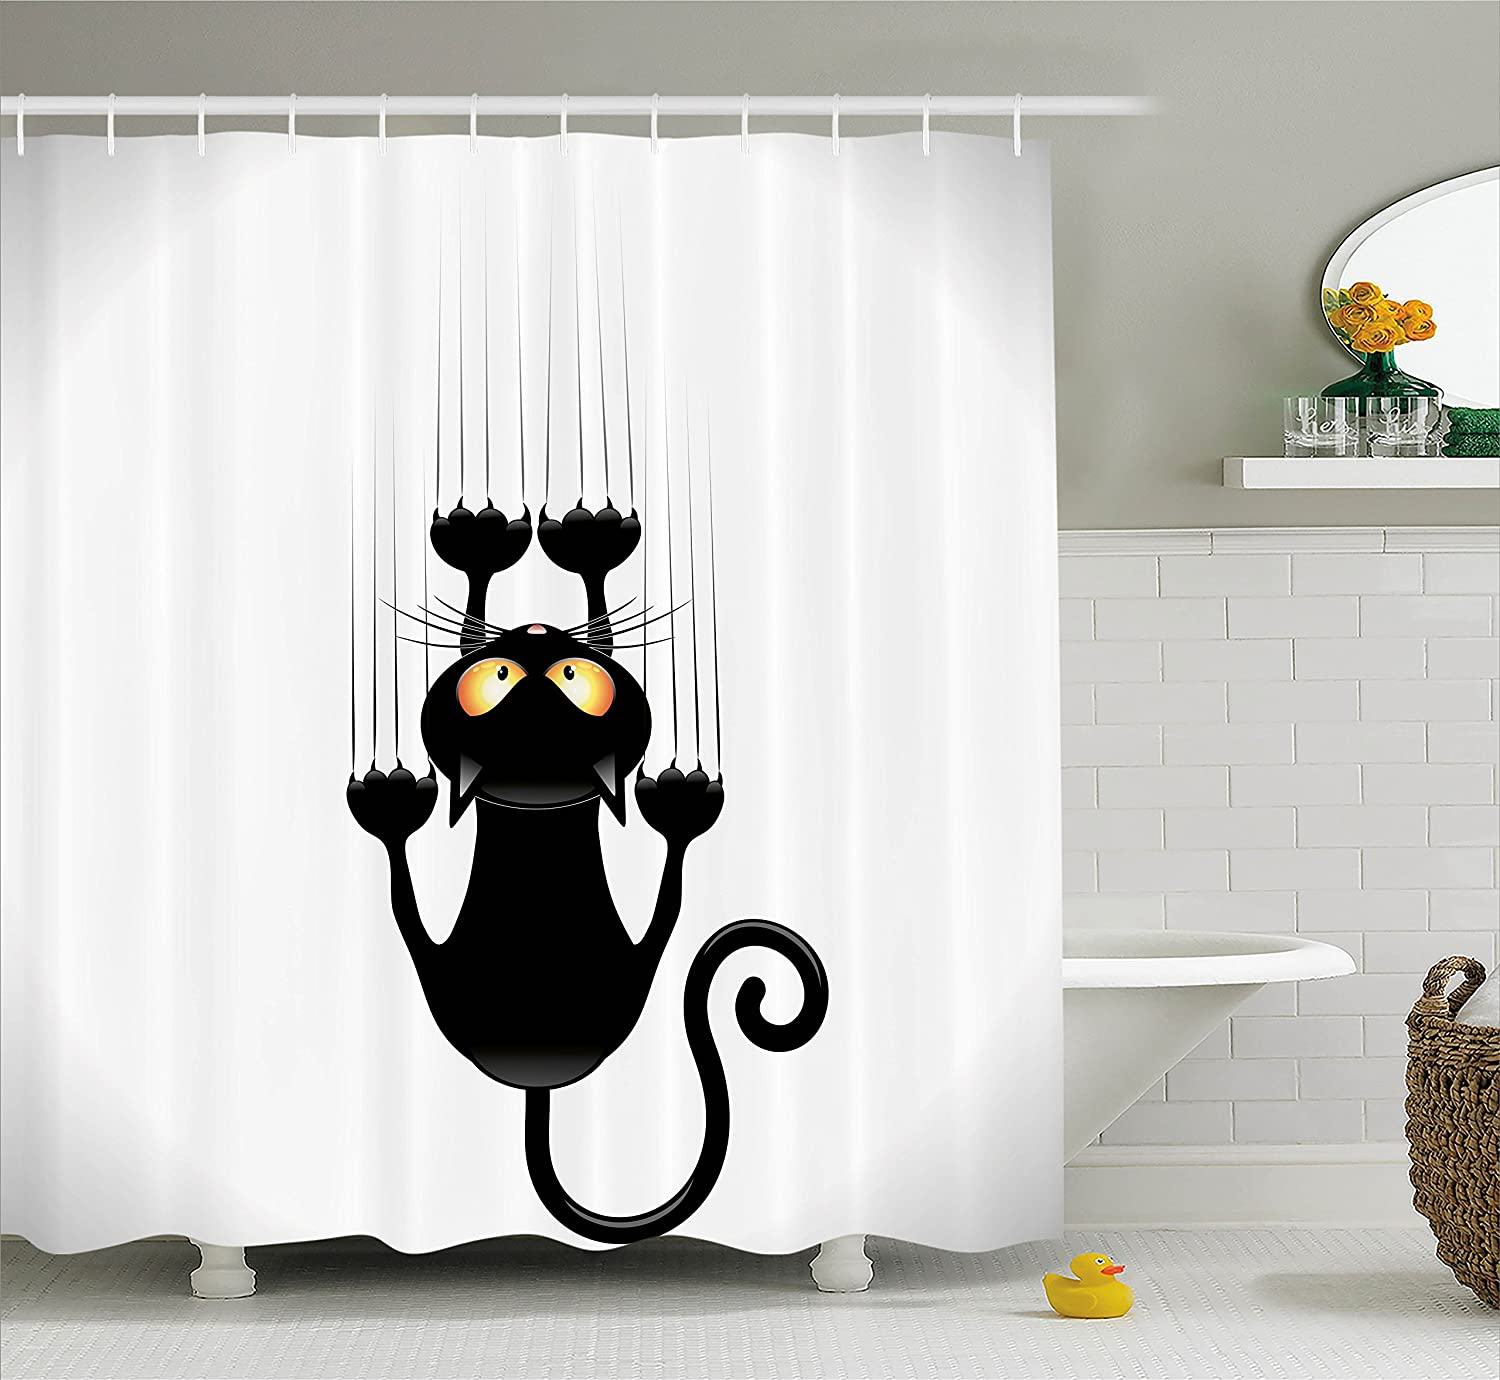 Ambesonne Funny Decor Collection, Naughty Cat Scratching the Wall with His Paws Grumpy Feline Humorous Kitten Graphic Work, Polyester Fabric Bathroom Shower Curtain Set with Hooks, Black White